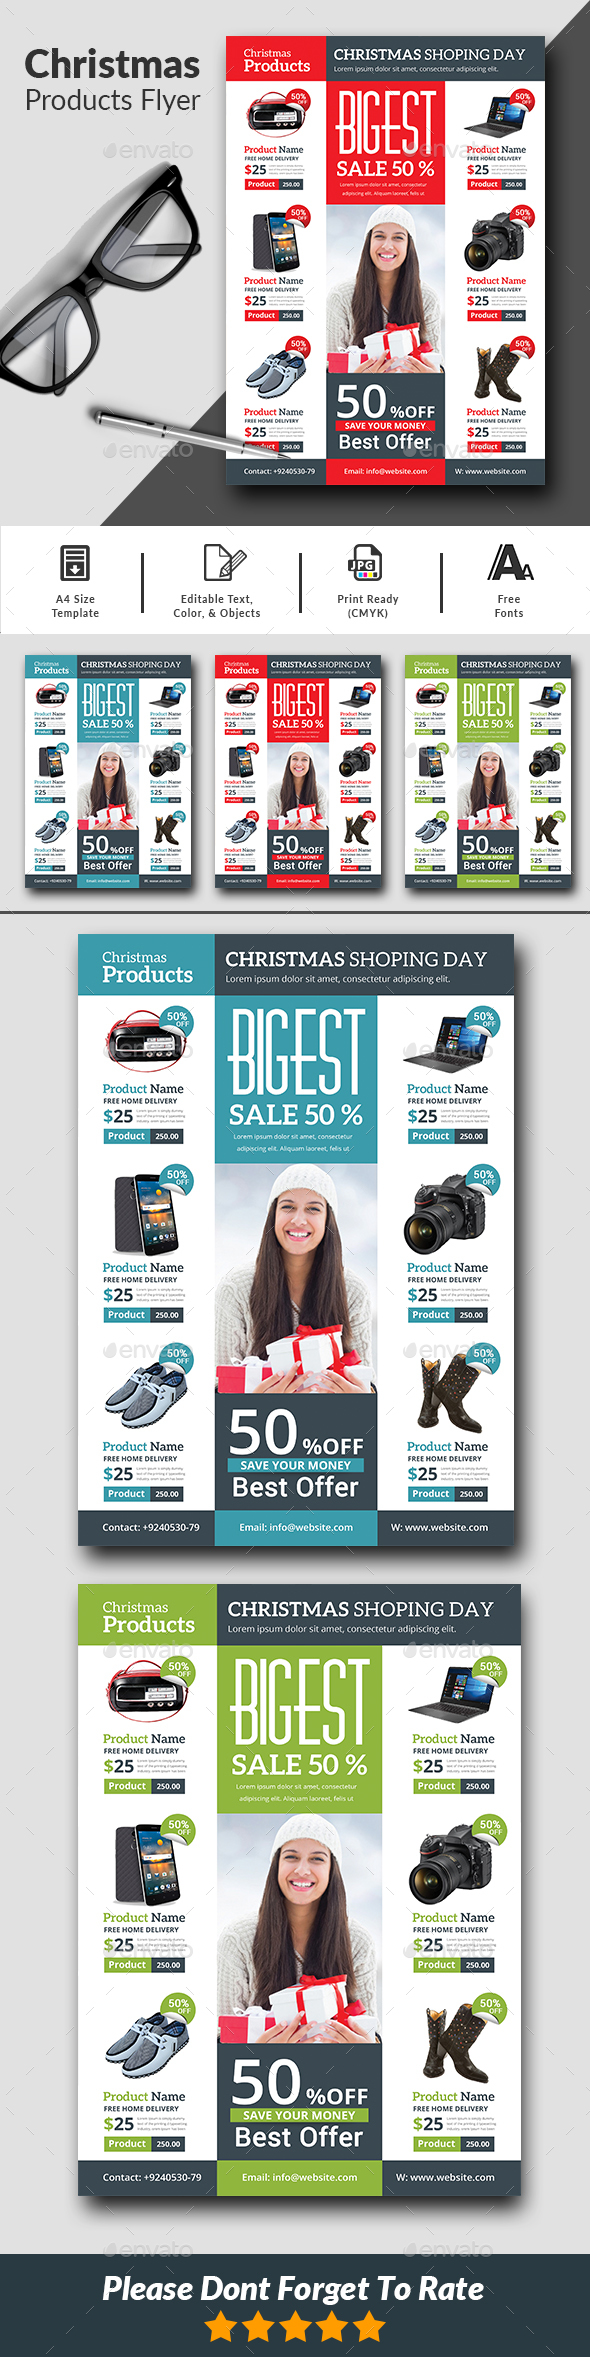 Christmas Product Flyer Templates - Commerce Flyers